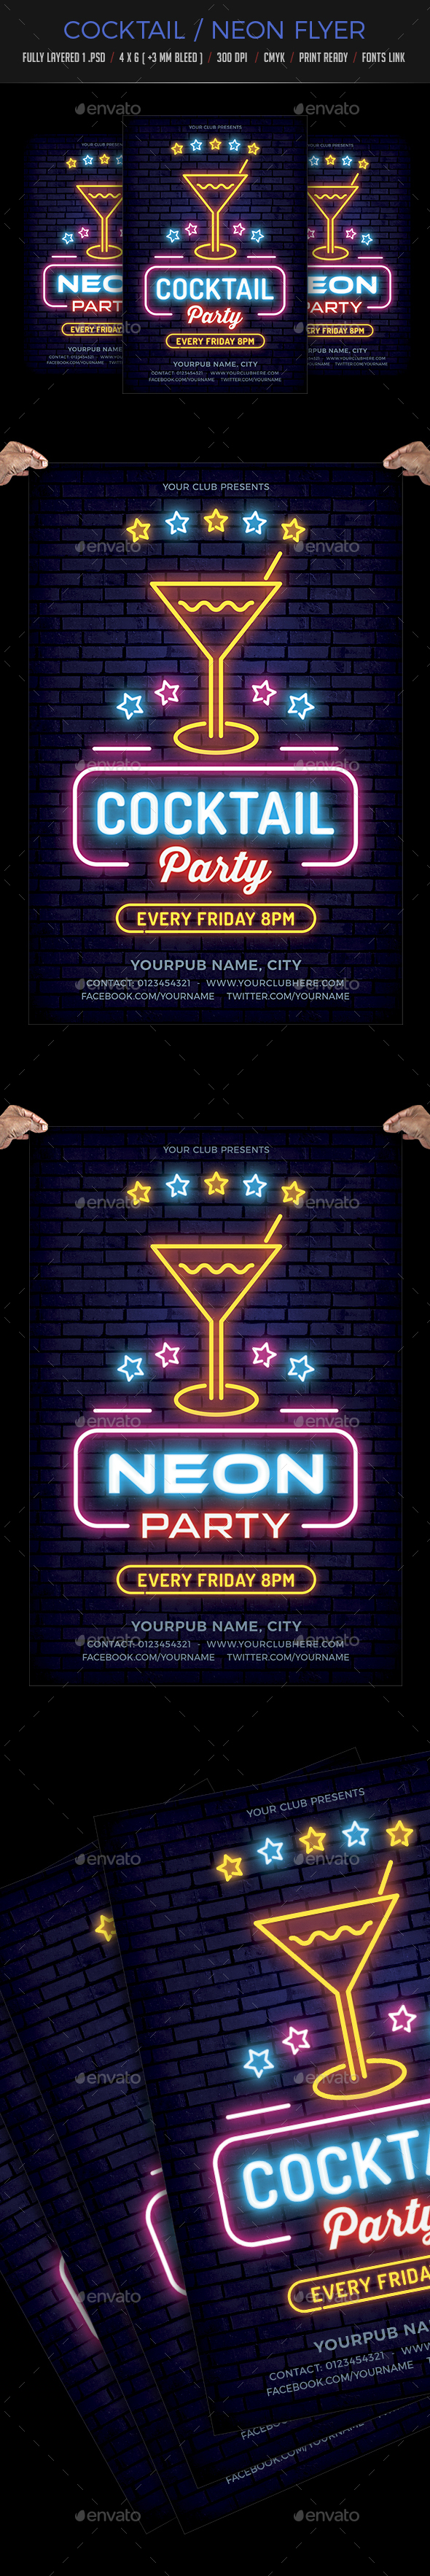 Neon / Cocktail Party Flyer - Clubs & Parties Events